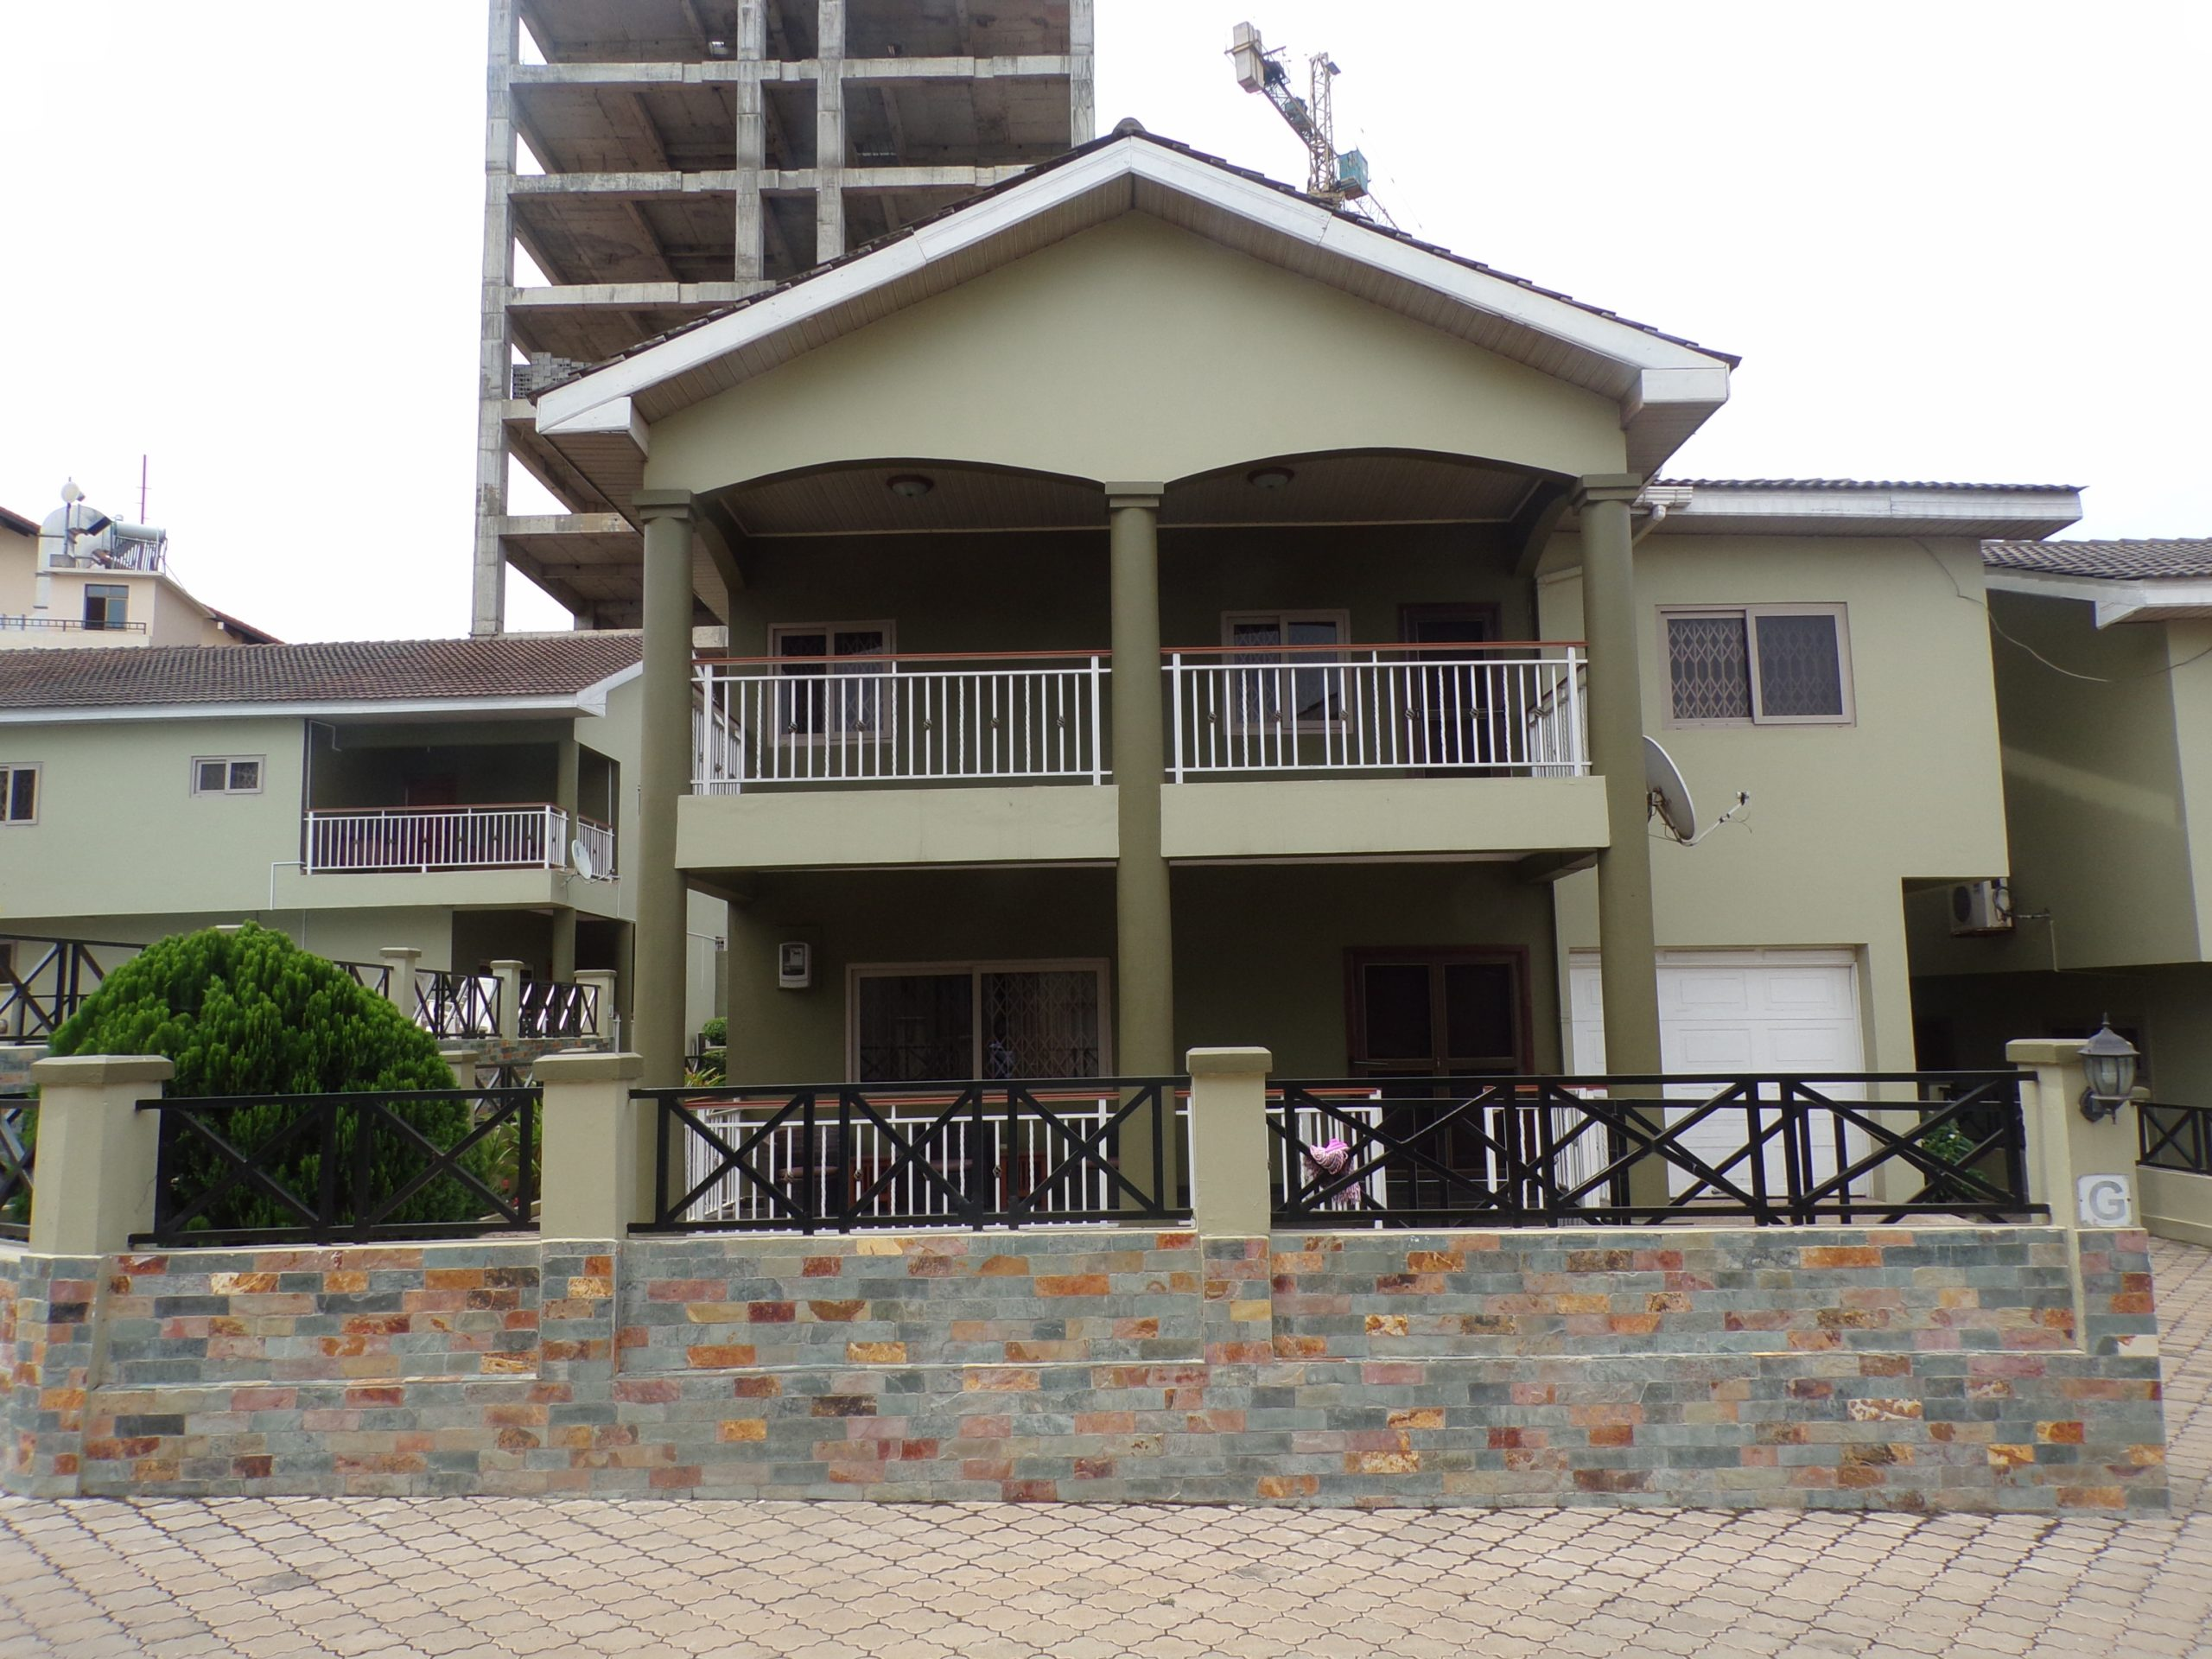 4 BEDROOM FURNISHED APARTMENT FOR RENT AT AIRPORT RESIDENTIAL